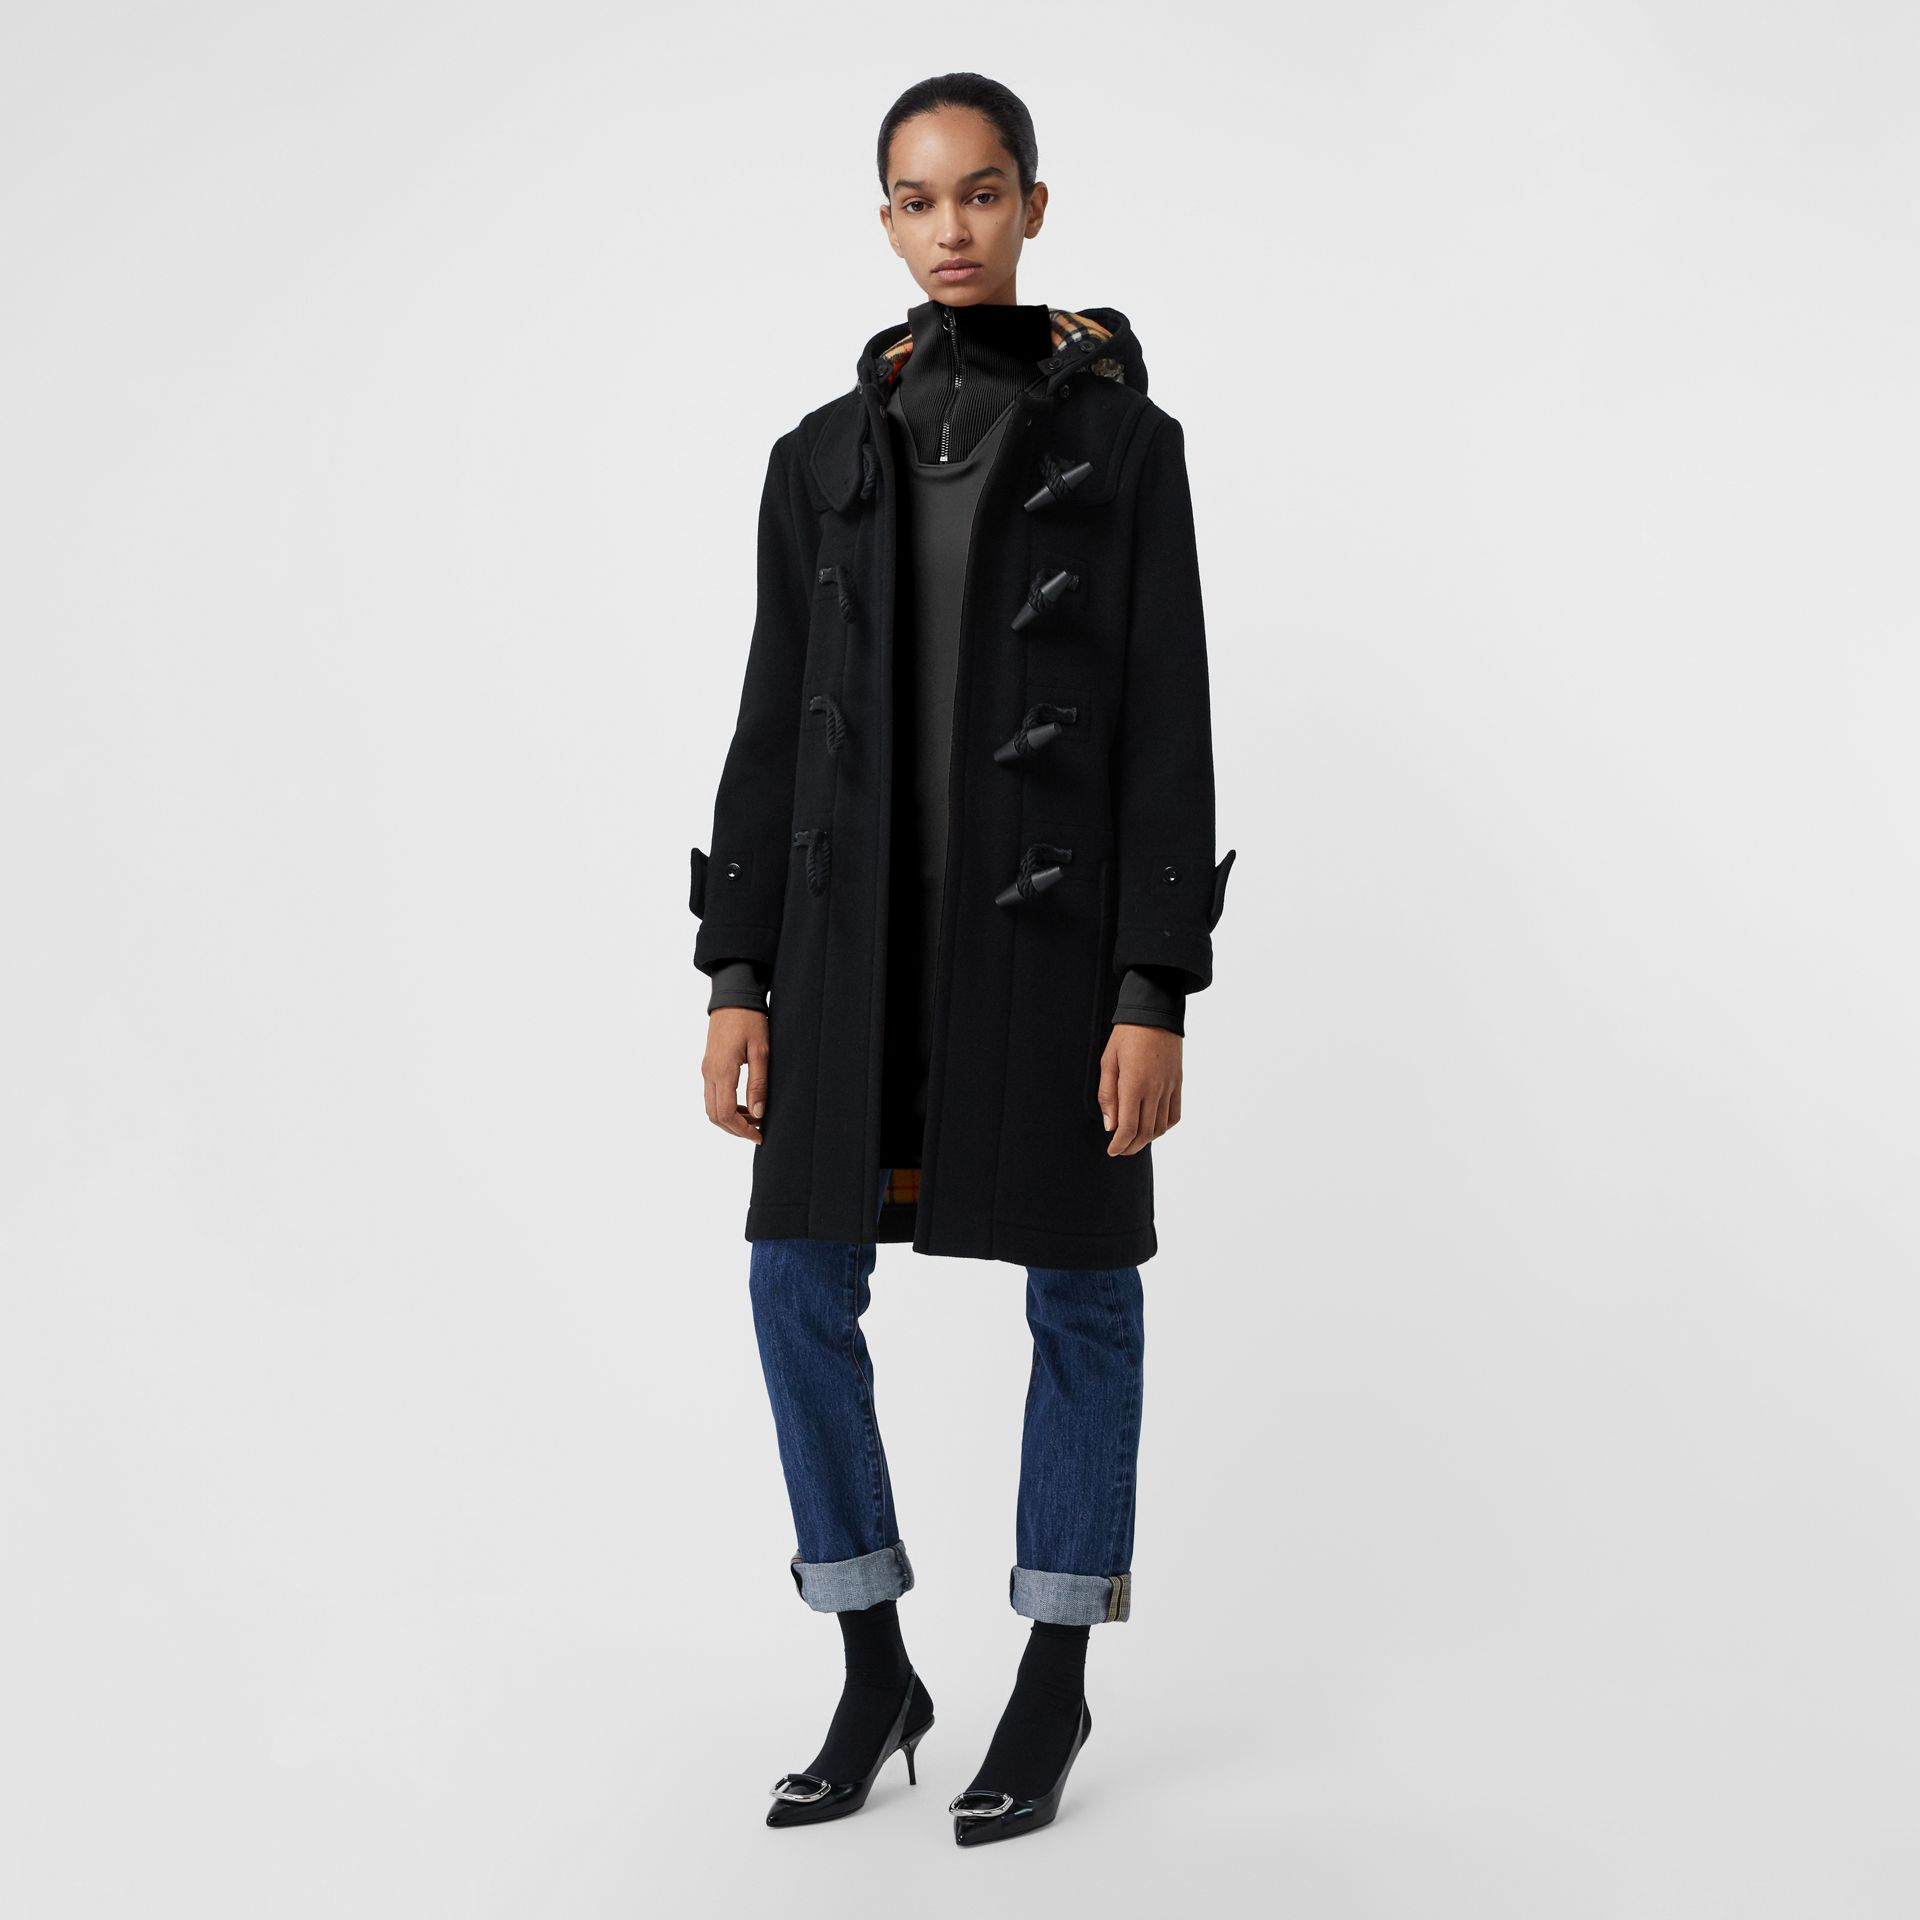 Wool Blend Duffle Coat in Black - Women | Burberry Australia - gallery image 5